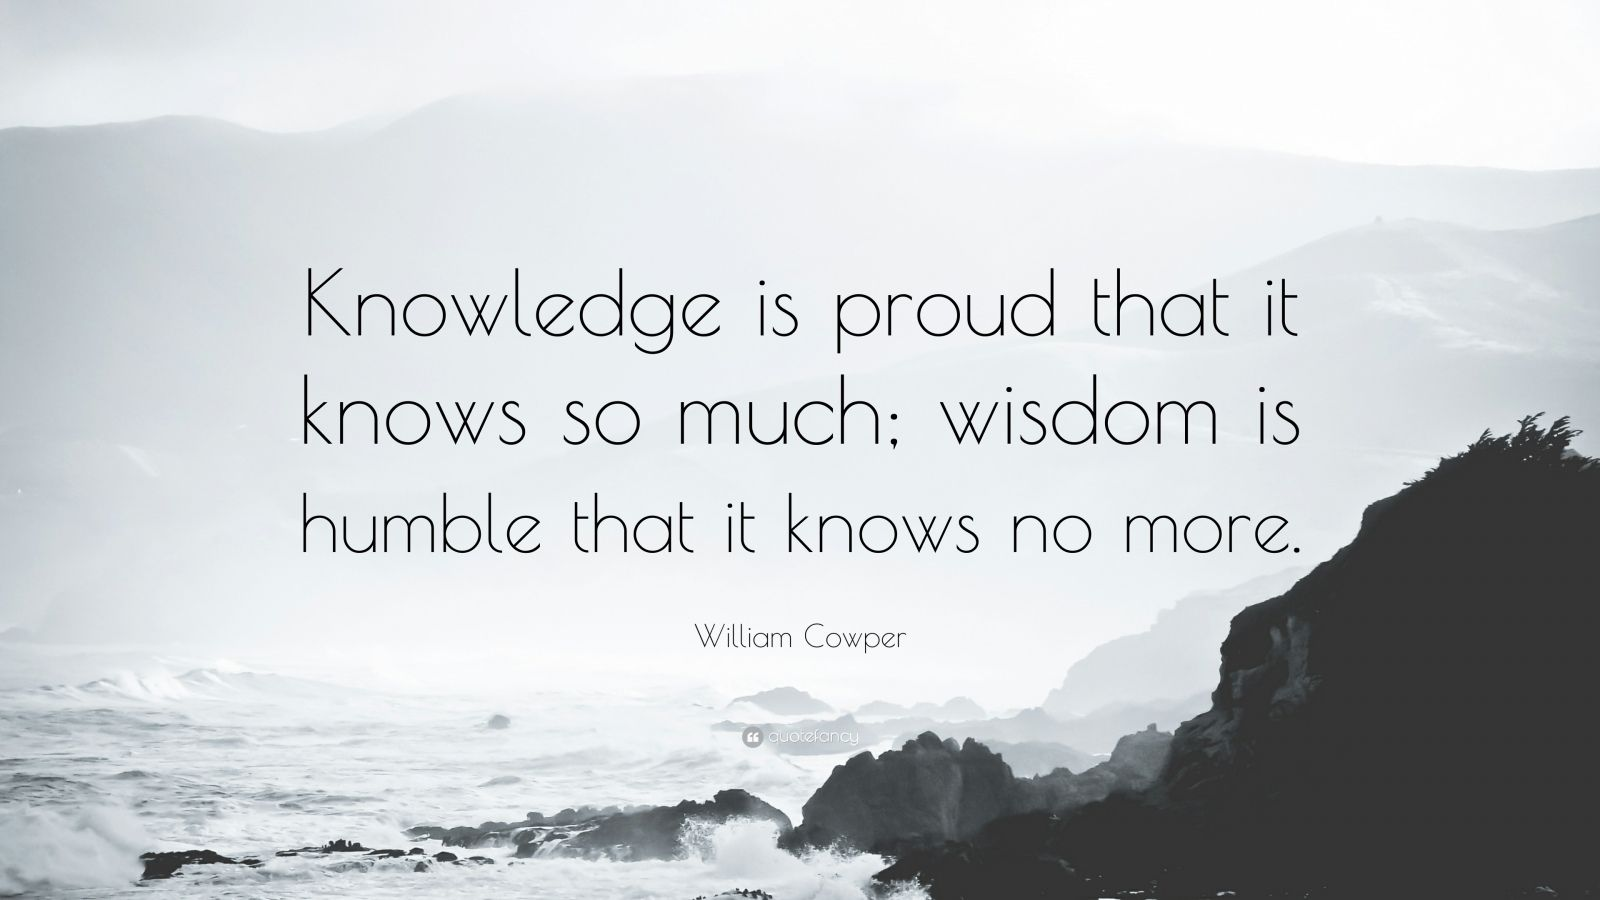 """William Cowper Quote: """"Knowledge is proud that it knows so much; wisdom is humble that it knows no more."""""""